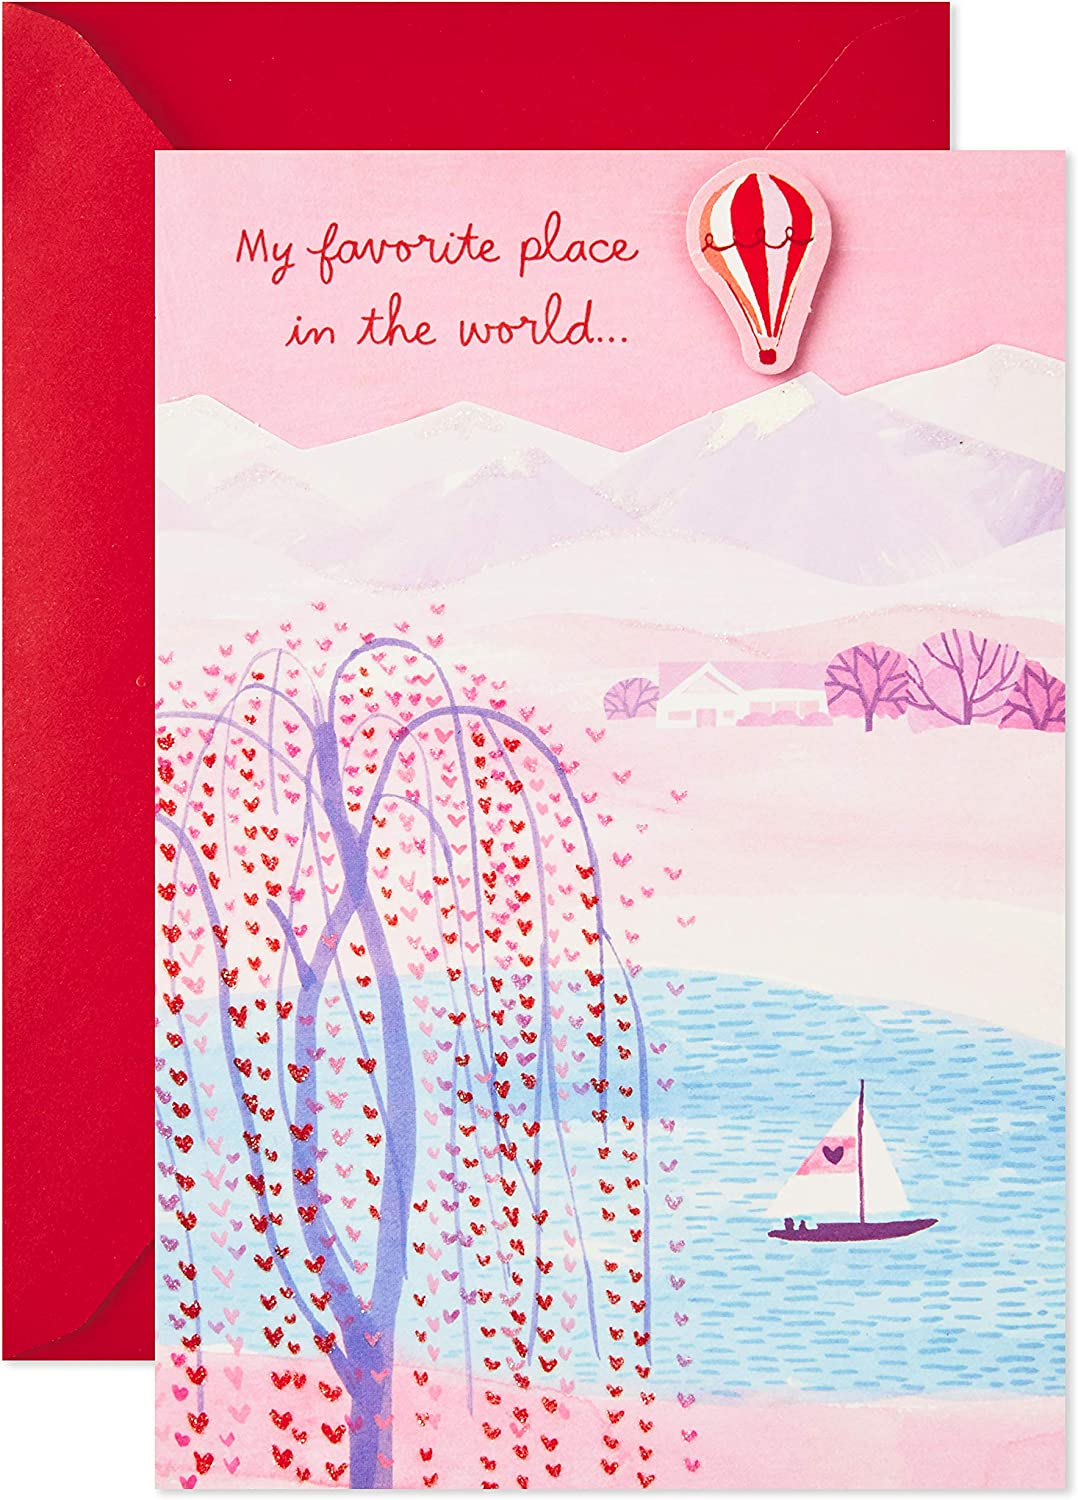 Romantic Papyrus Greetings Valentine Card Sunset Over Lake in Boat For Husband